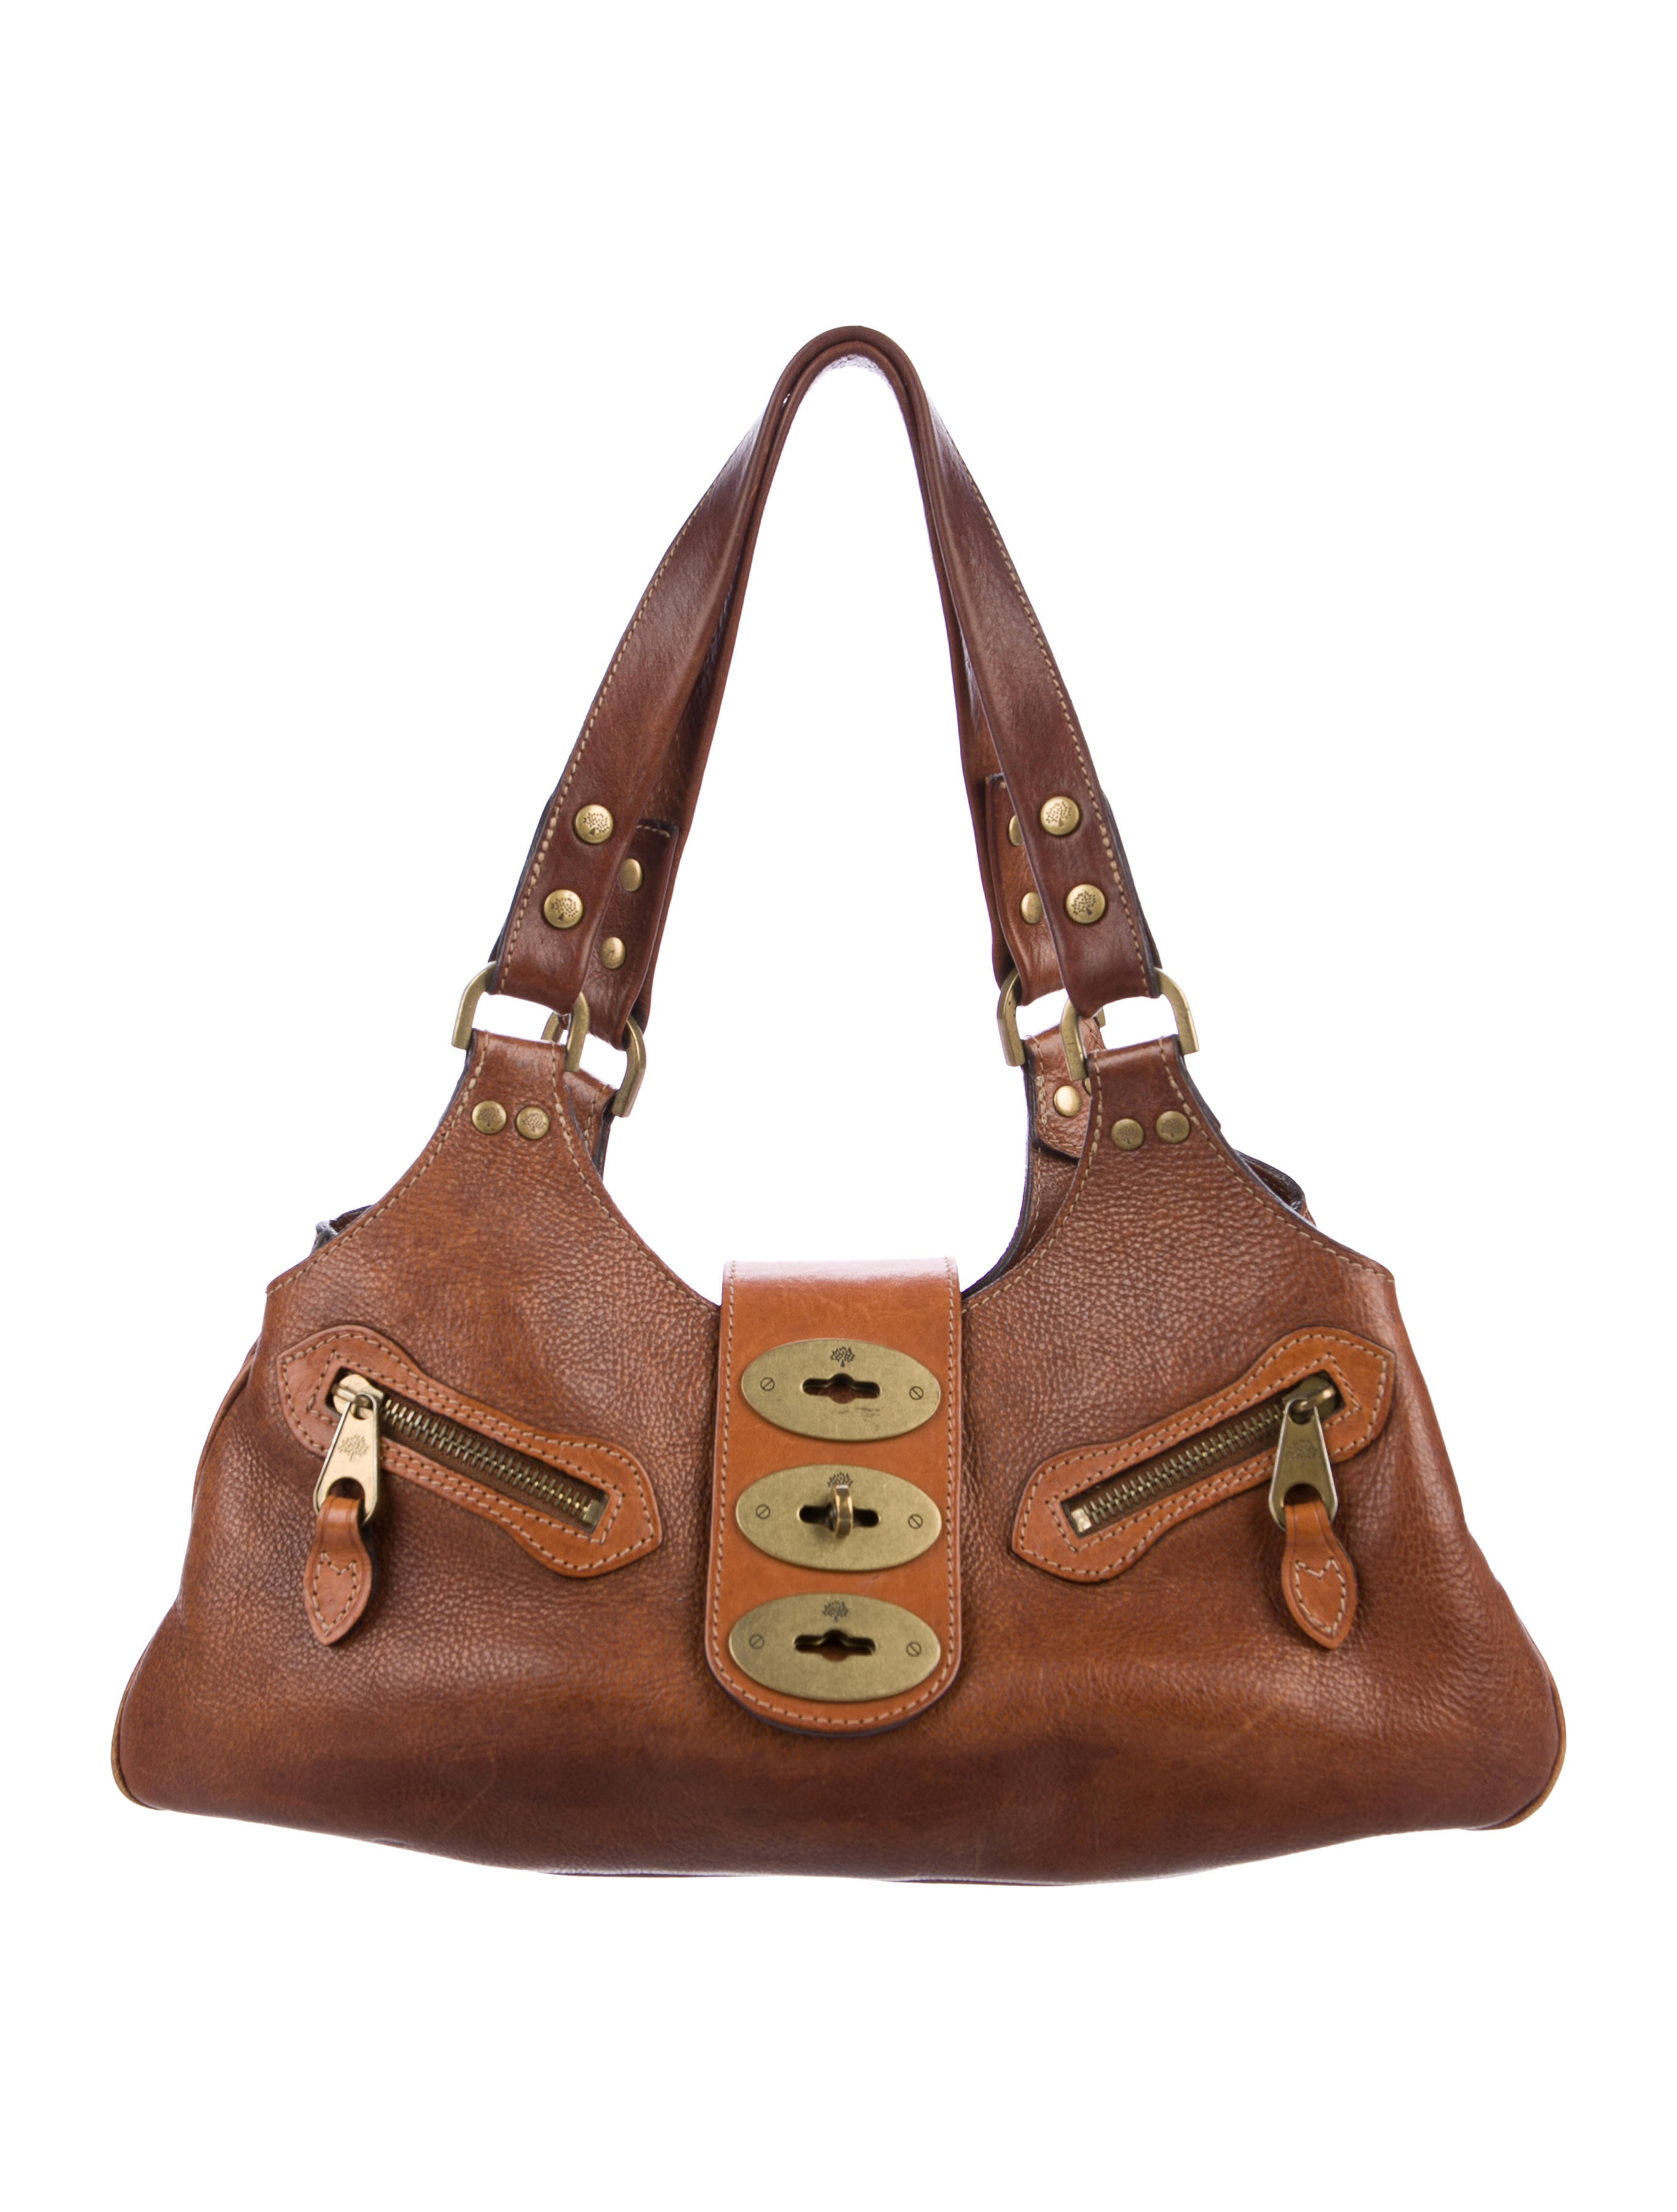 0fd190d1e79d Mulberry Kensington Darwin Bag - Handbags - MUL23935